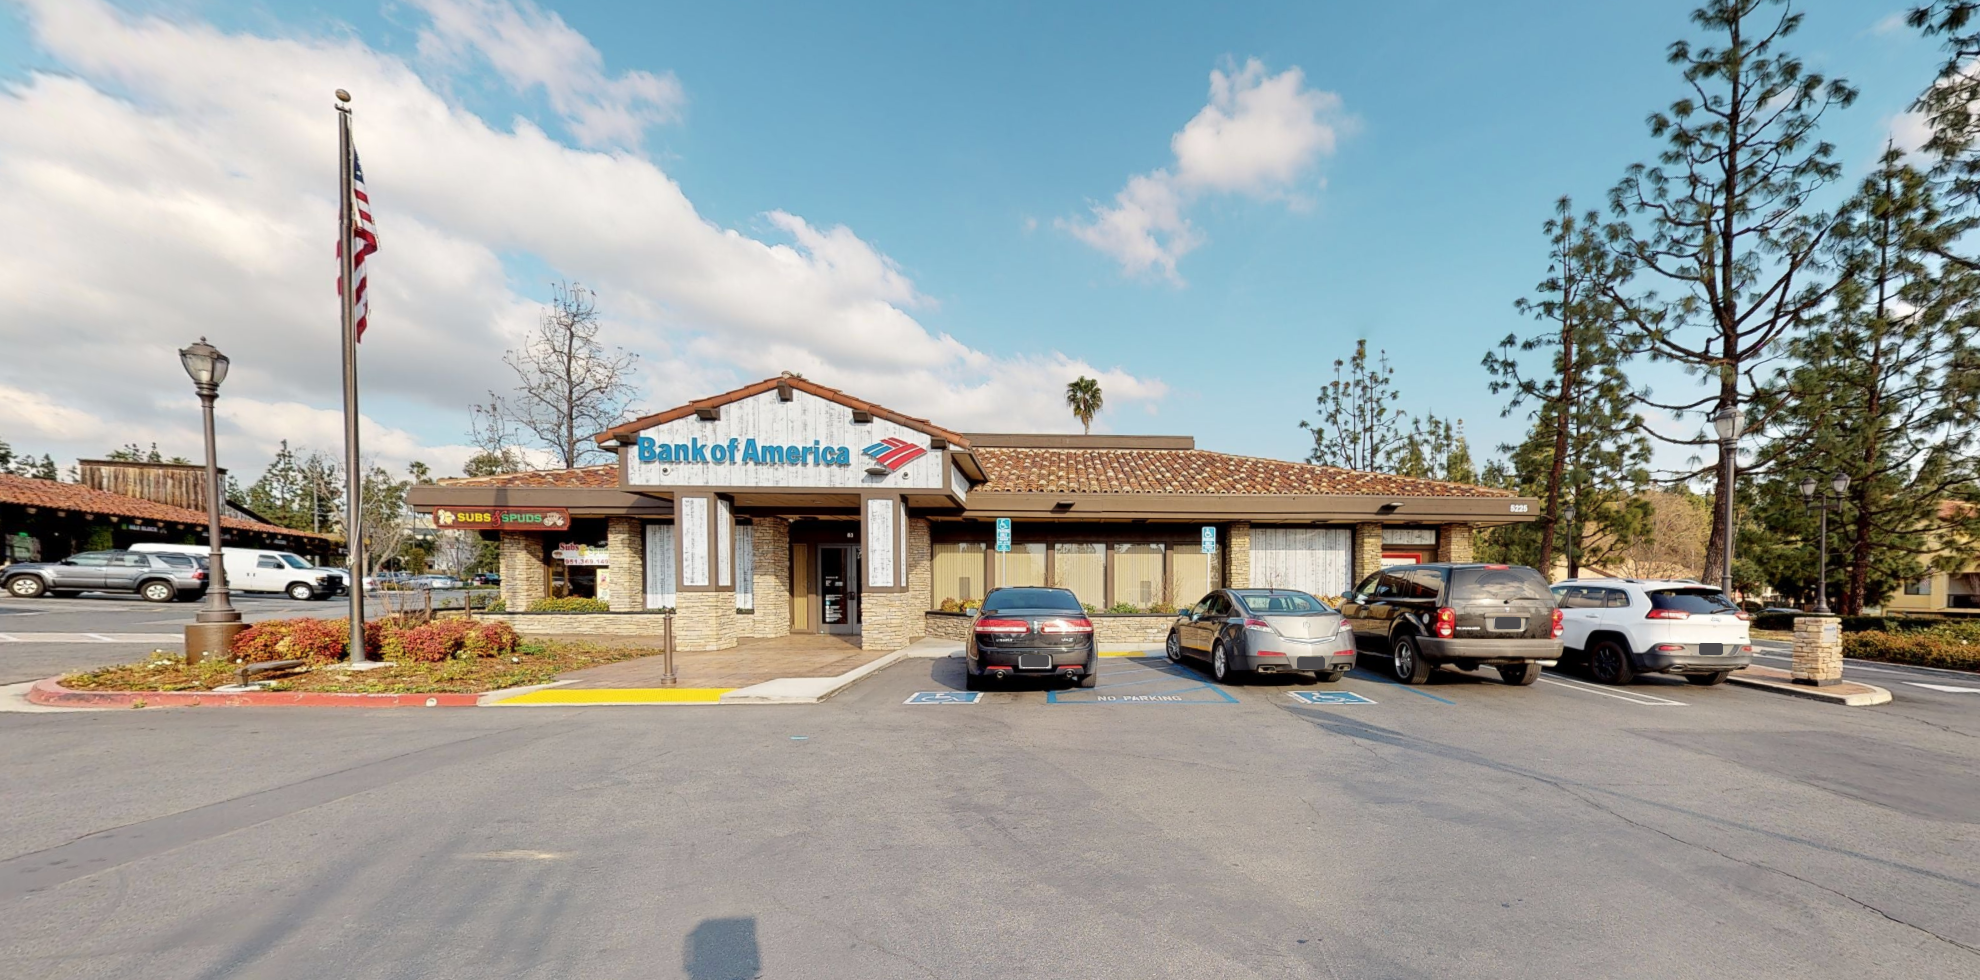 Bank of America financial center with drive-thru ATM   5225 Canyon Crest Dr, Riverside, CA 92507